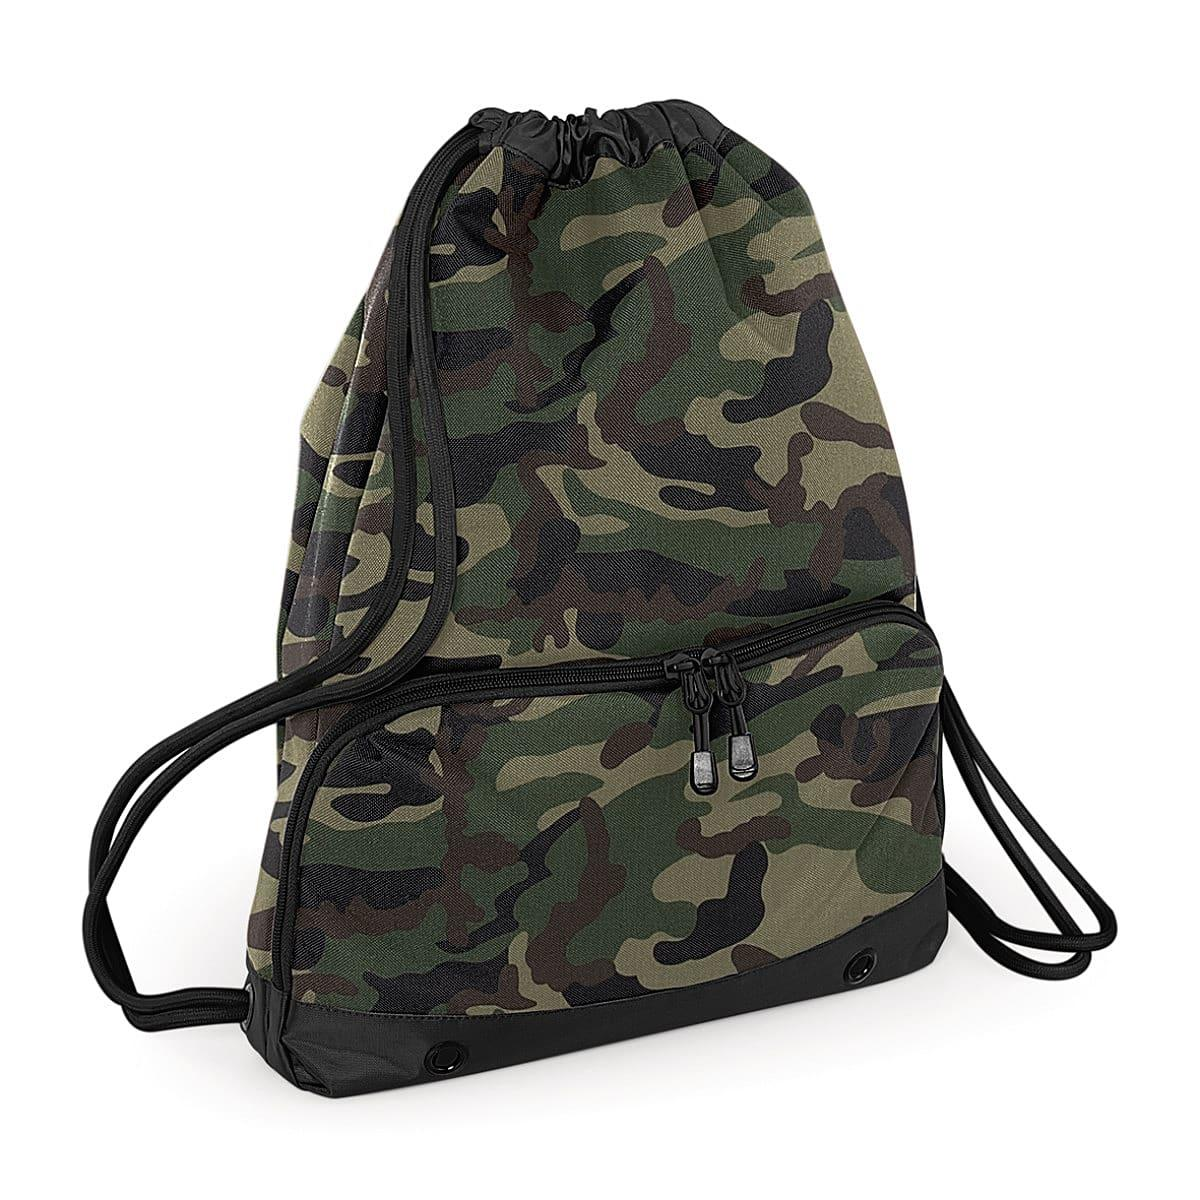 Bagbase Athleisure Gymsac in Jungle Camo (Product Code: BG542)